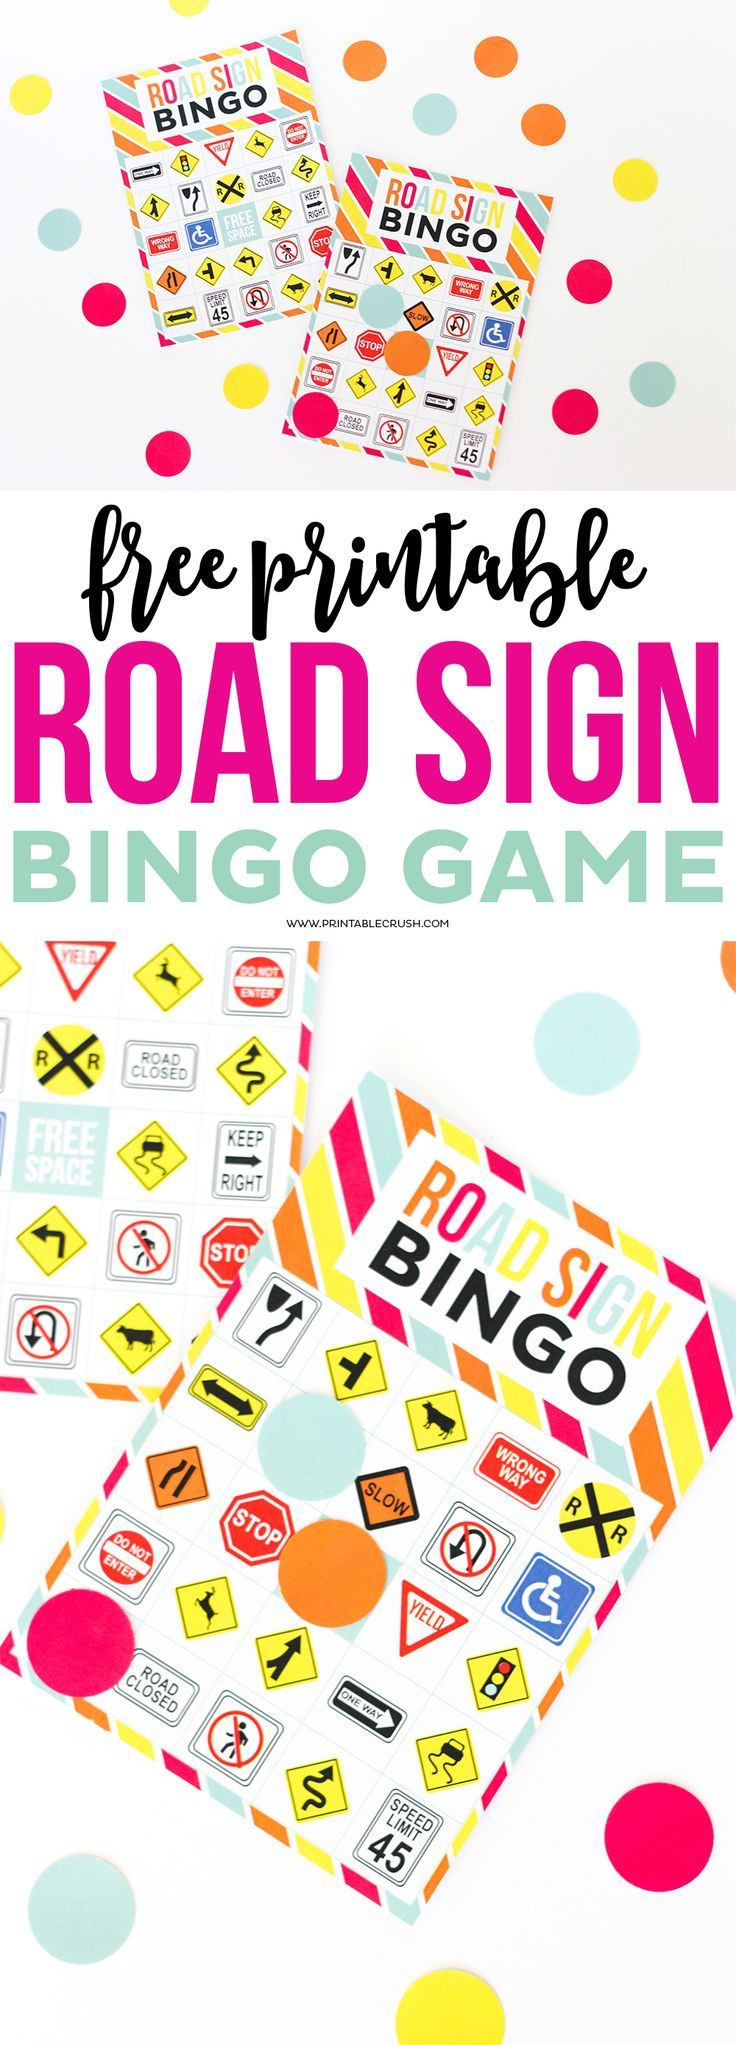 55 best road signs images on pinterest games kid stuff and free printable road sign bingo game it has cute colors i like robcynllc Images